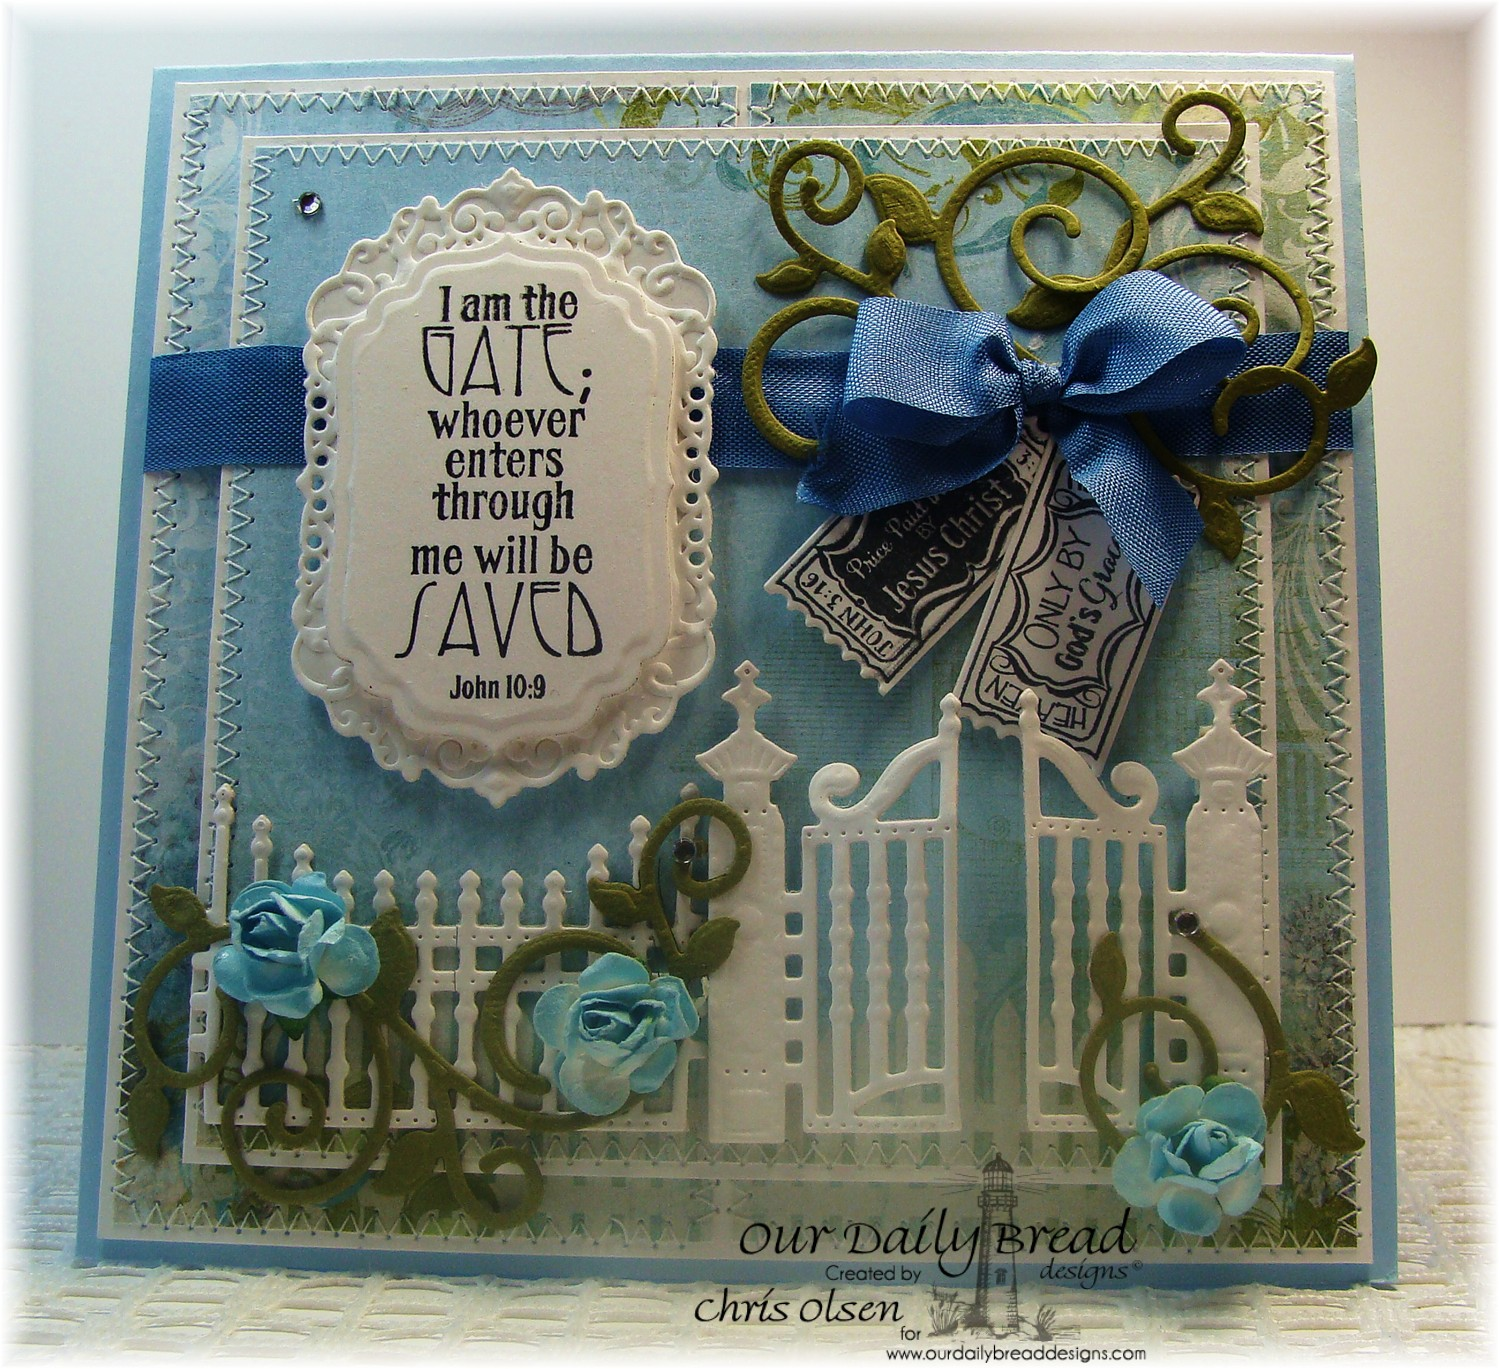 Stamps - Our Daily Bread Designs Admit Three, ODBD Custom Gilded Gate Die, The Gate, ODBD Custom Mini Tags Dies